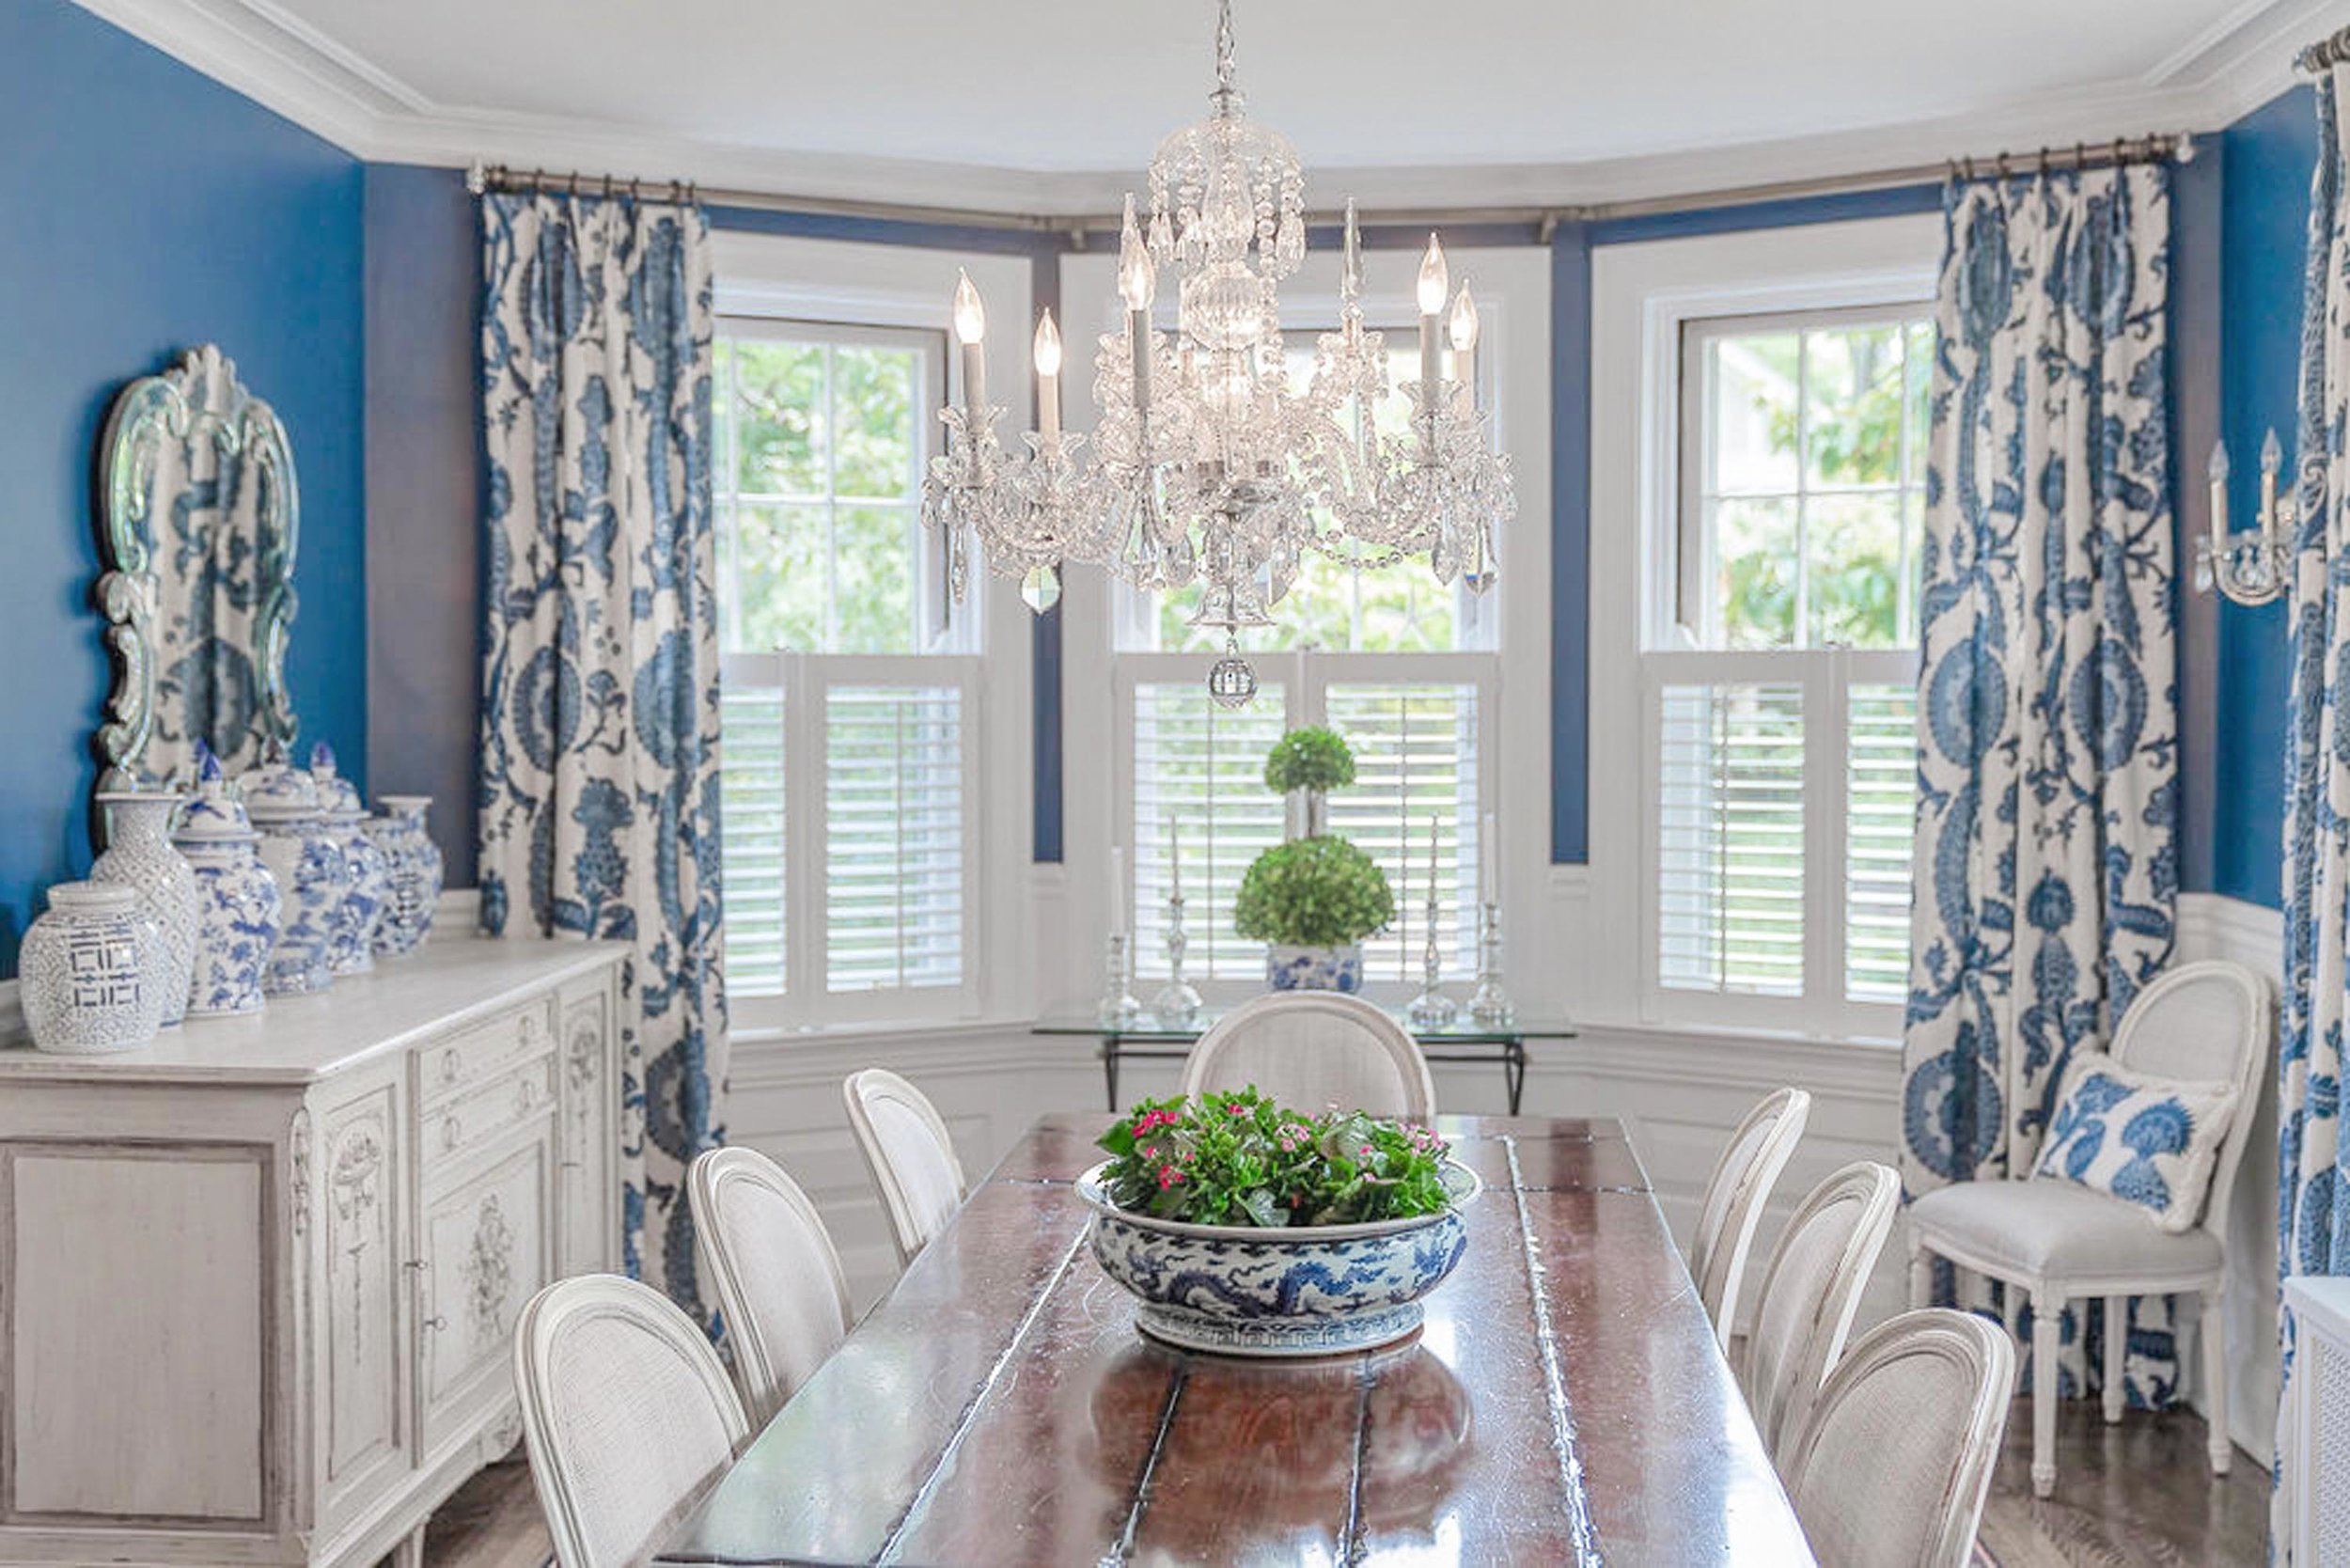 Dining room with wooden table, white chairs and crystal chandelier